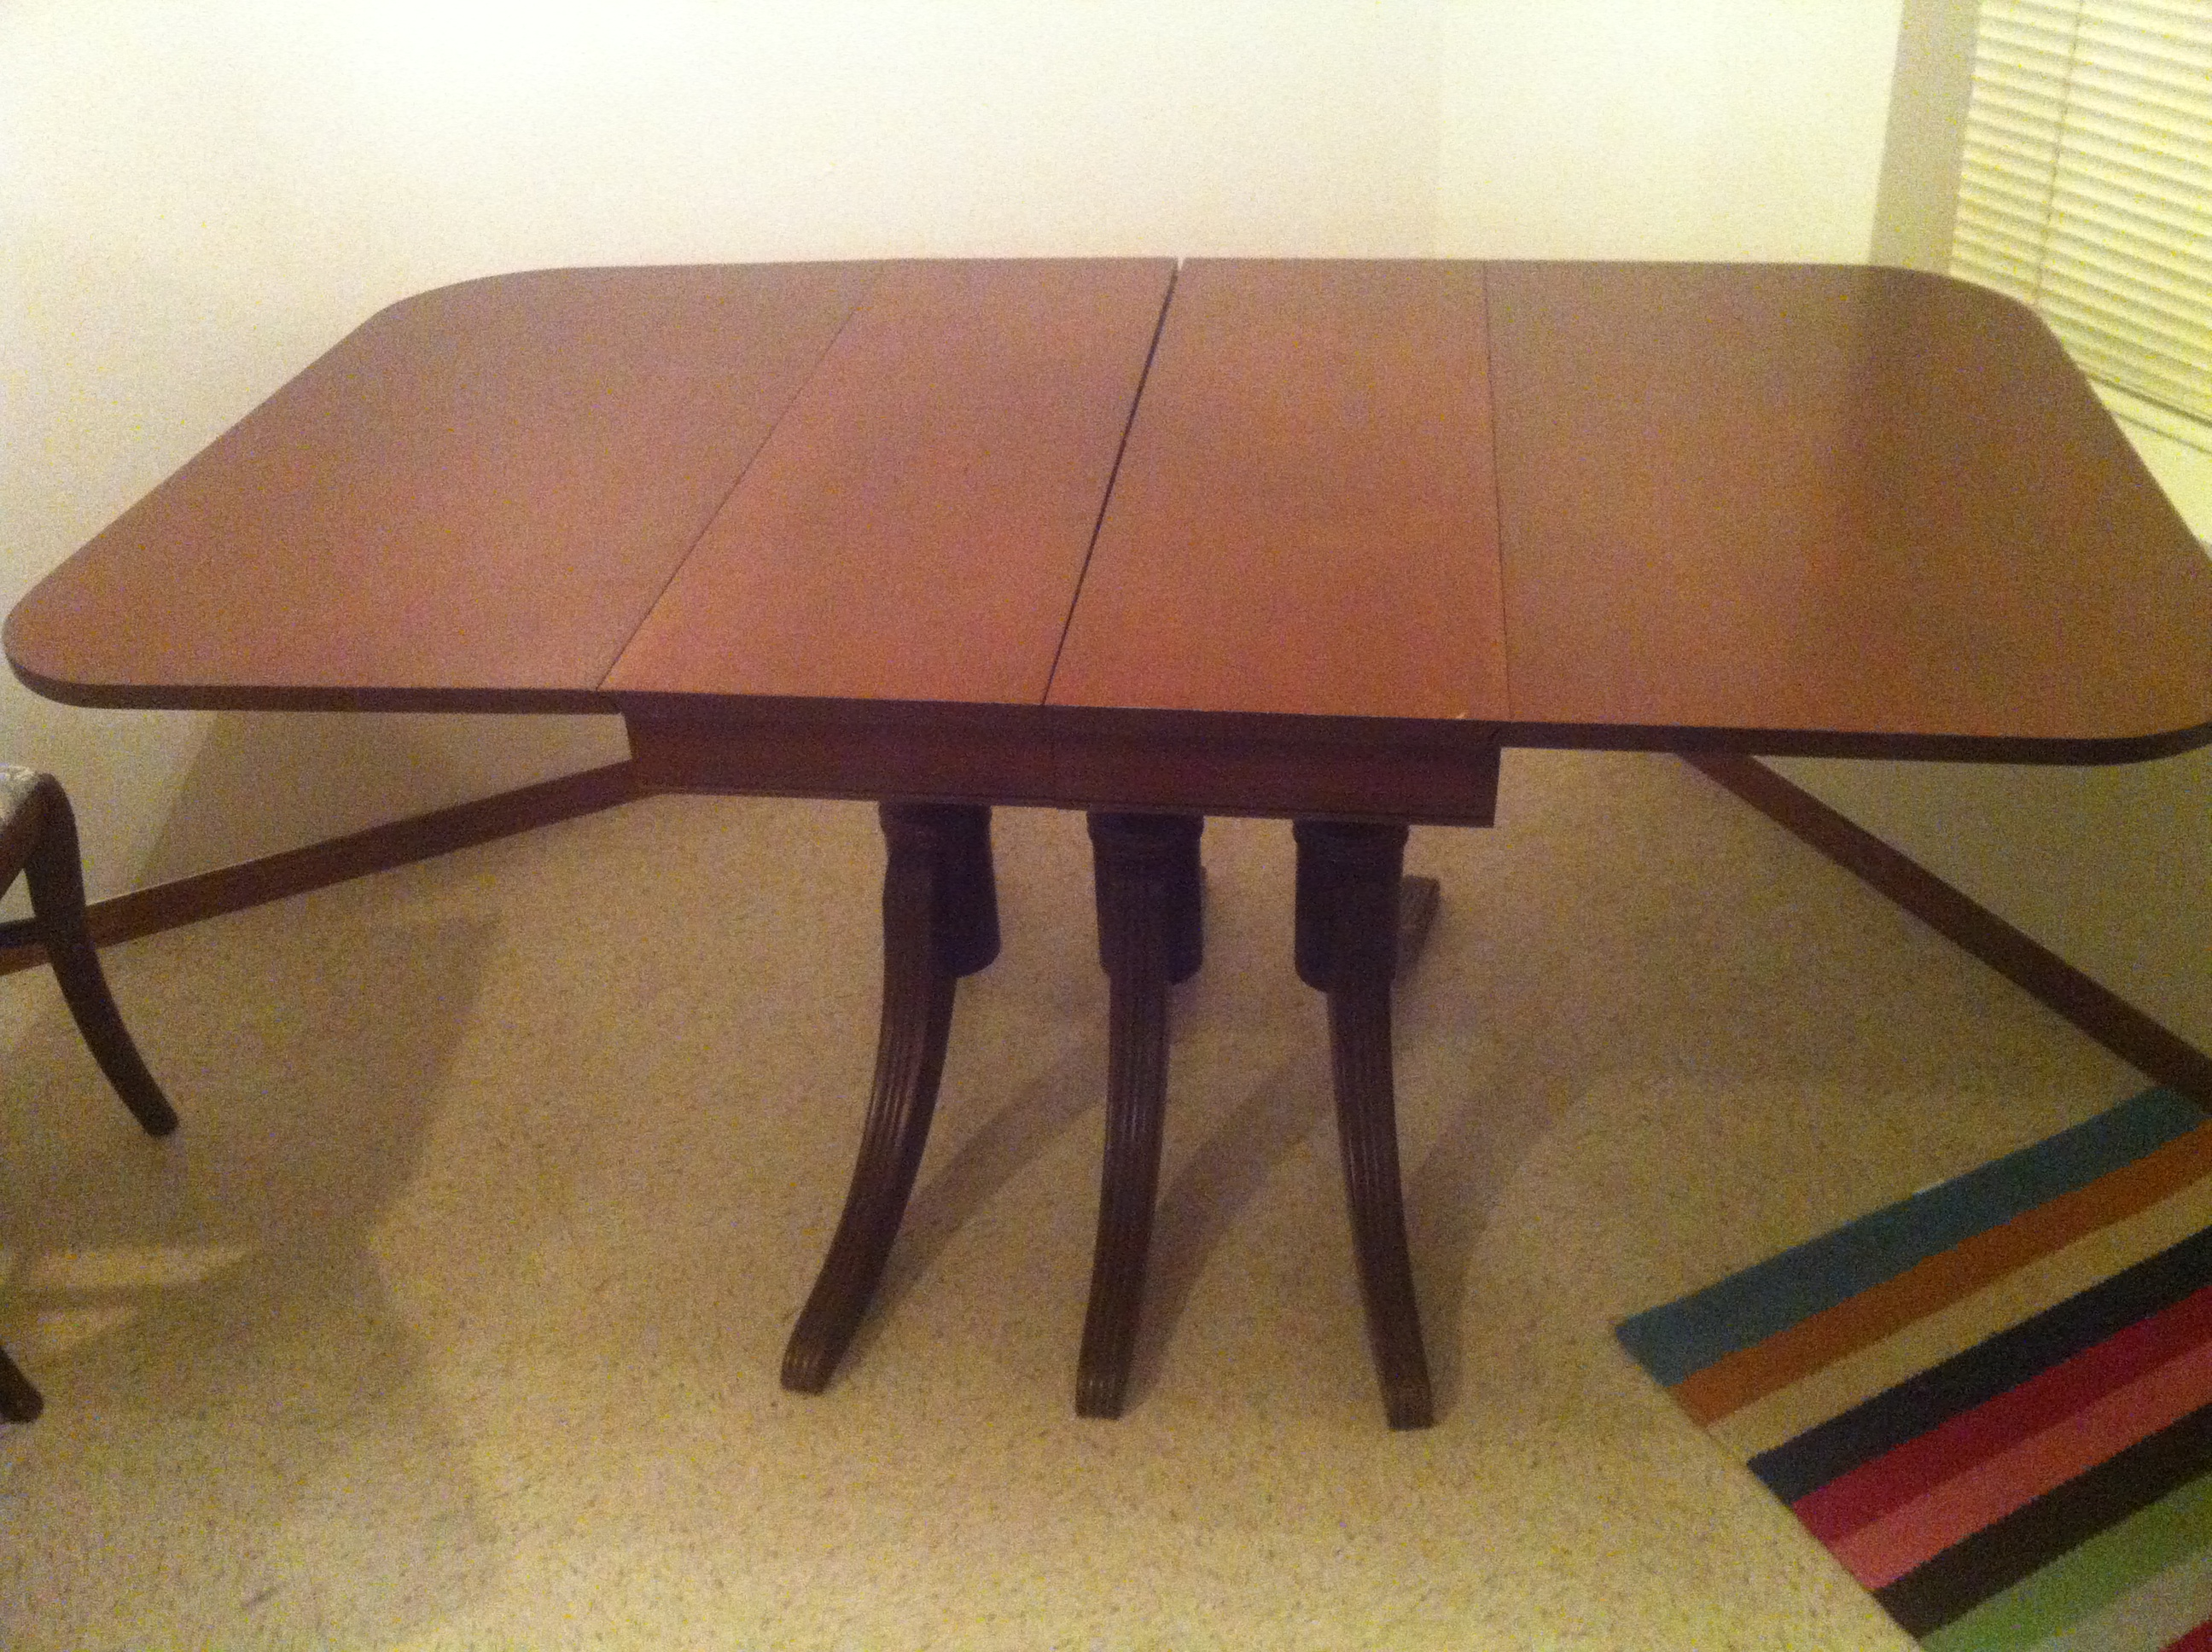 Duncan Phyfe Table with 2 Leaves and 4 Chairs For Sale ...